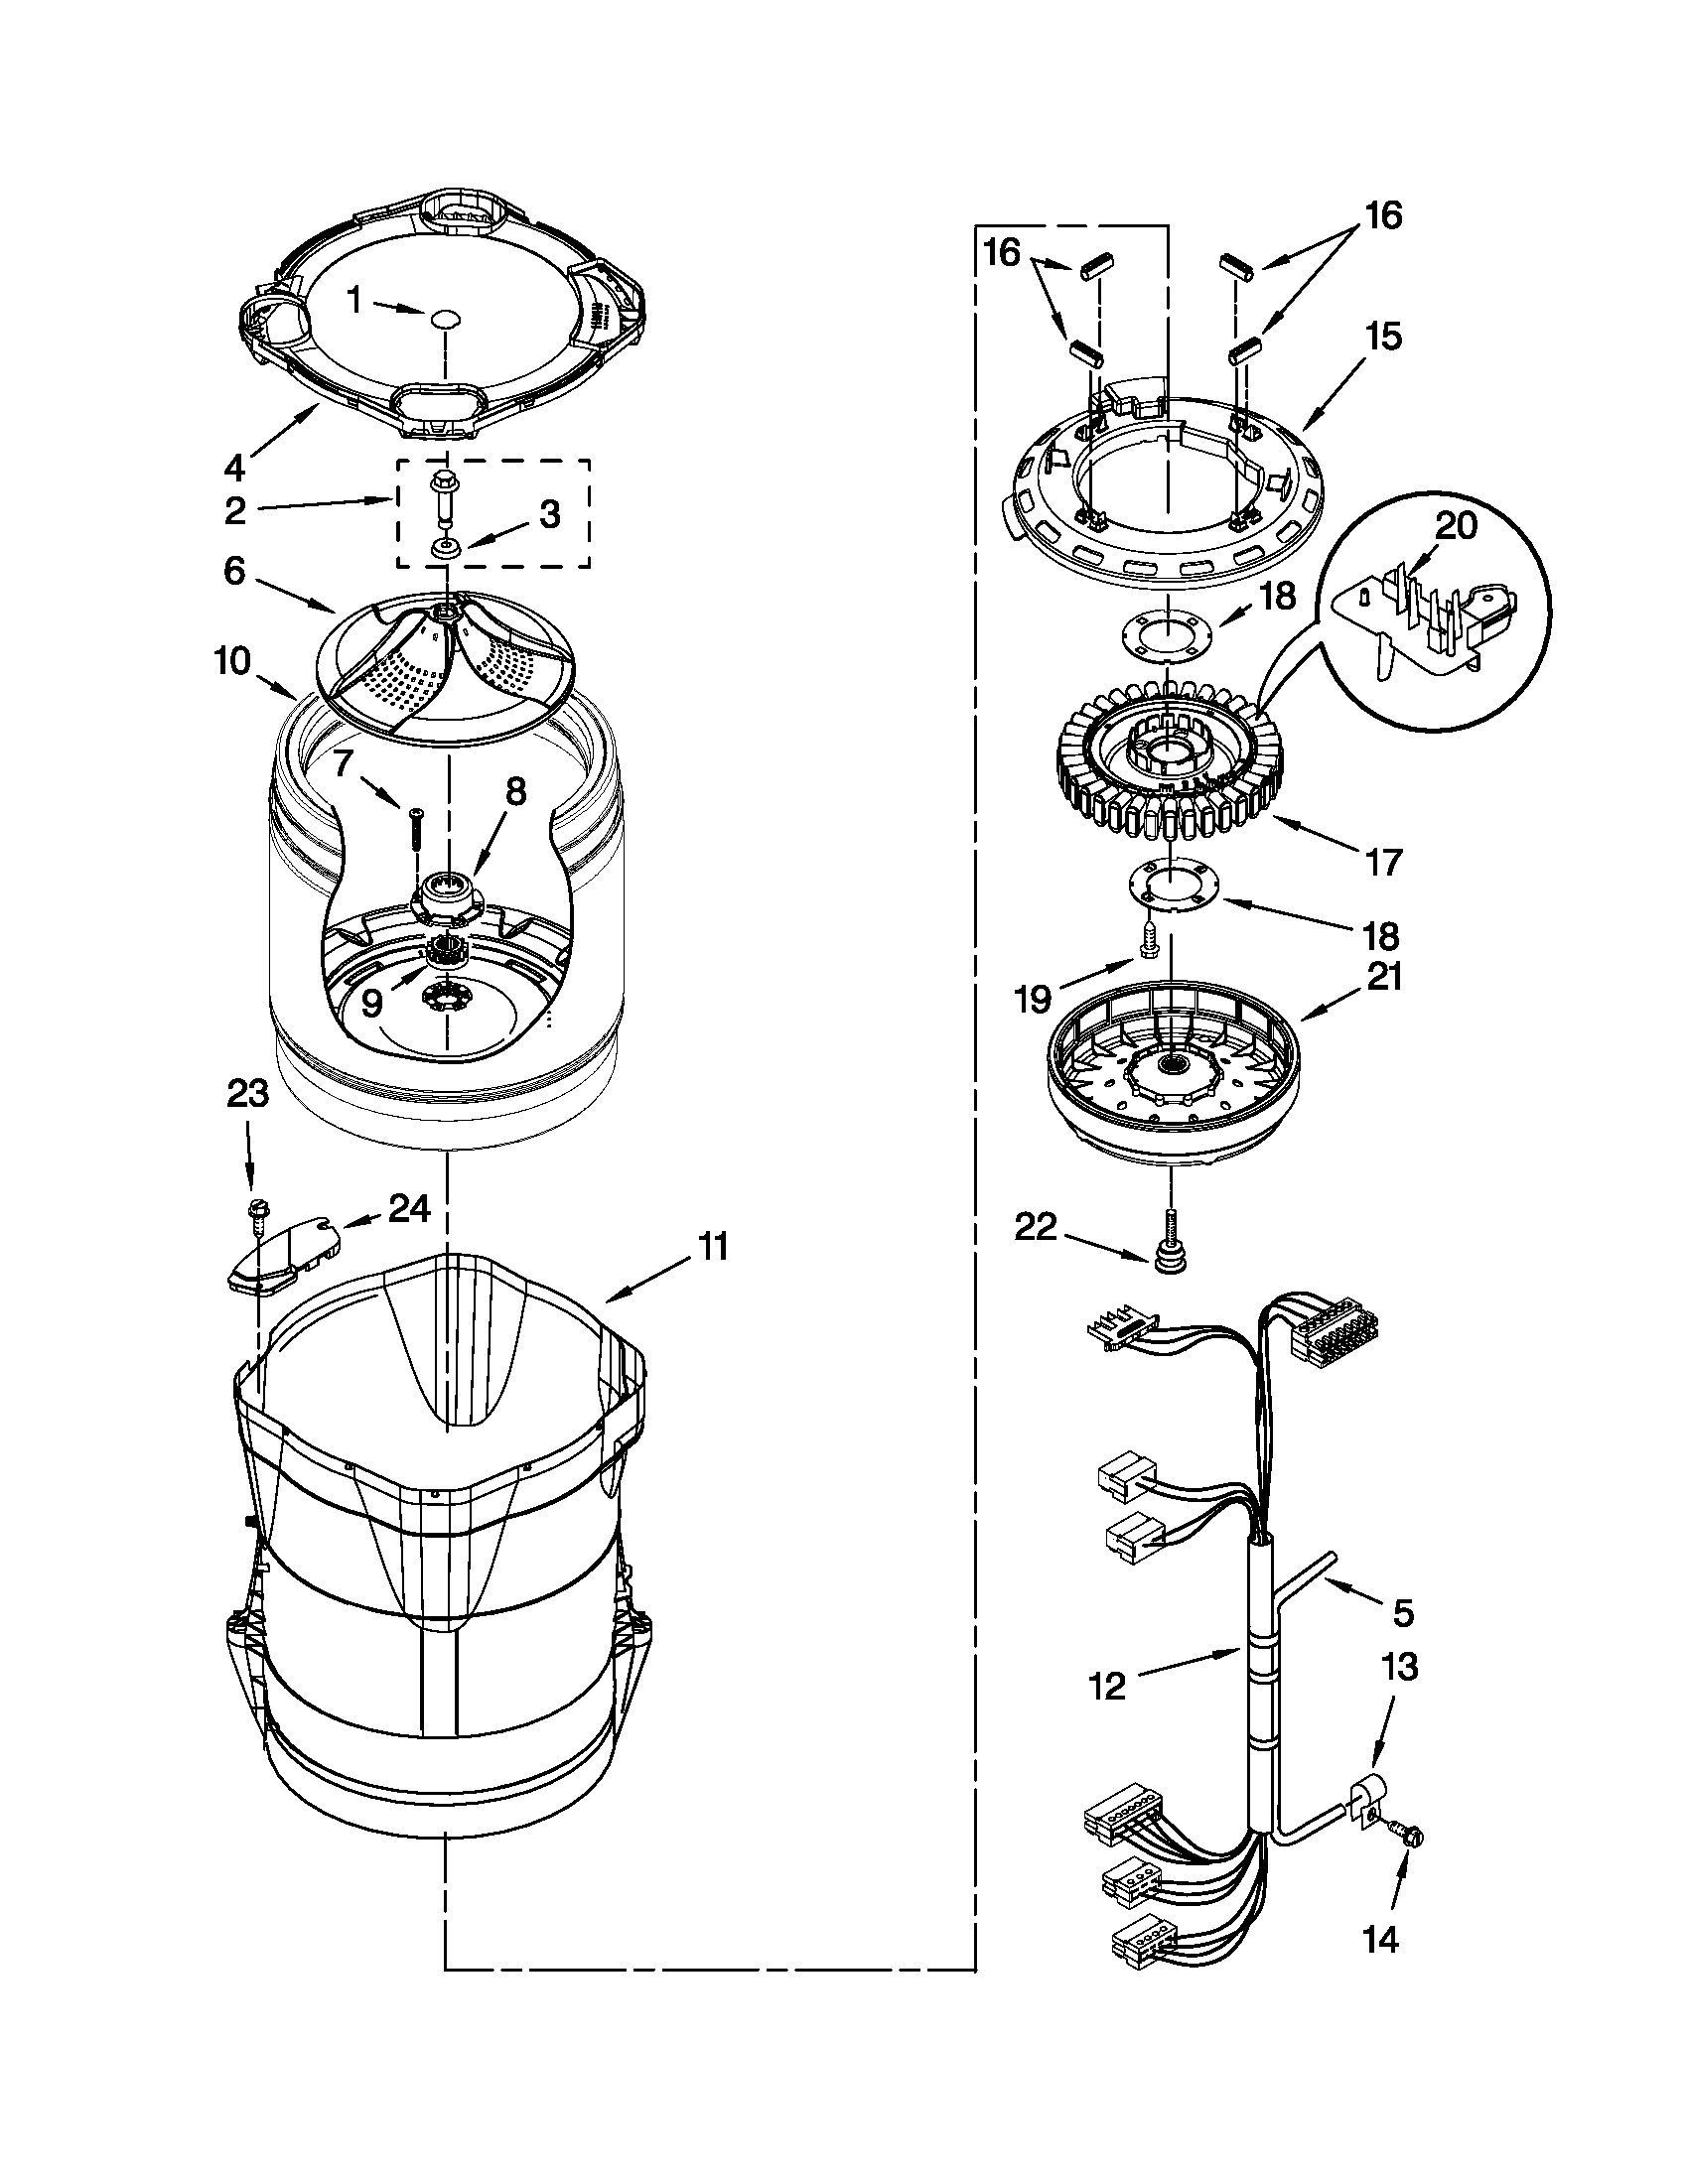 hight resolution of whirlpool wtw8200yw0 motor basket and tub parts diagram